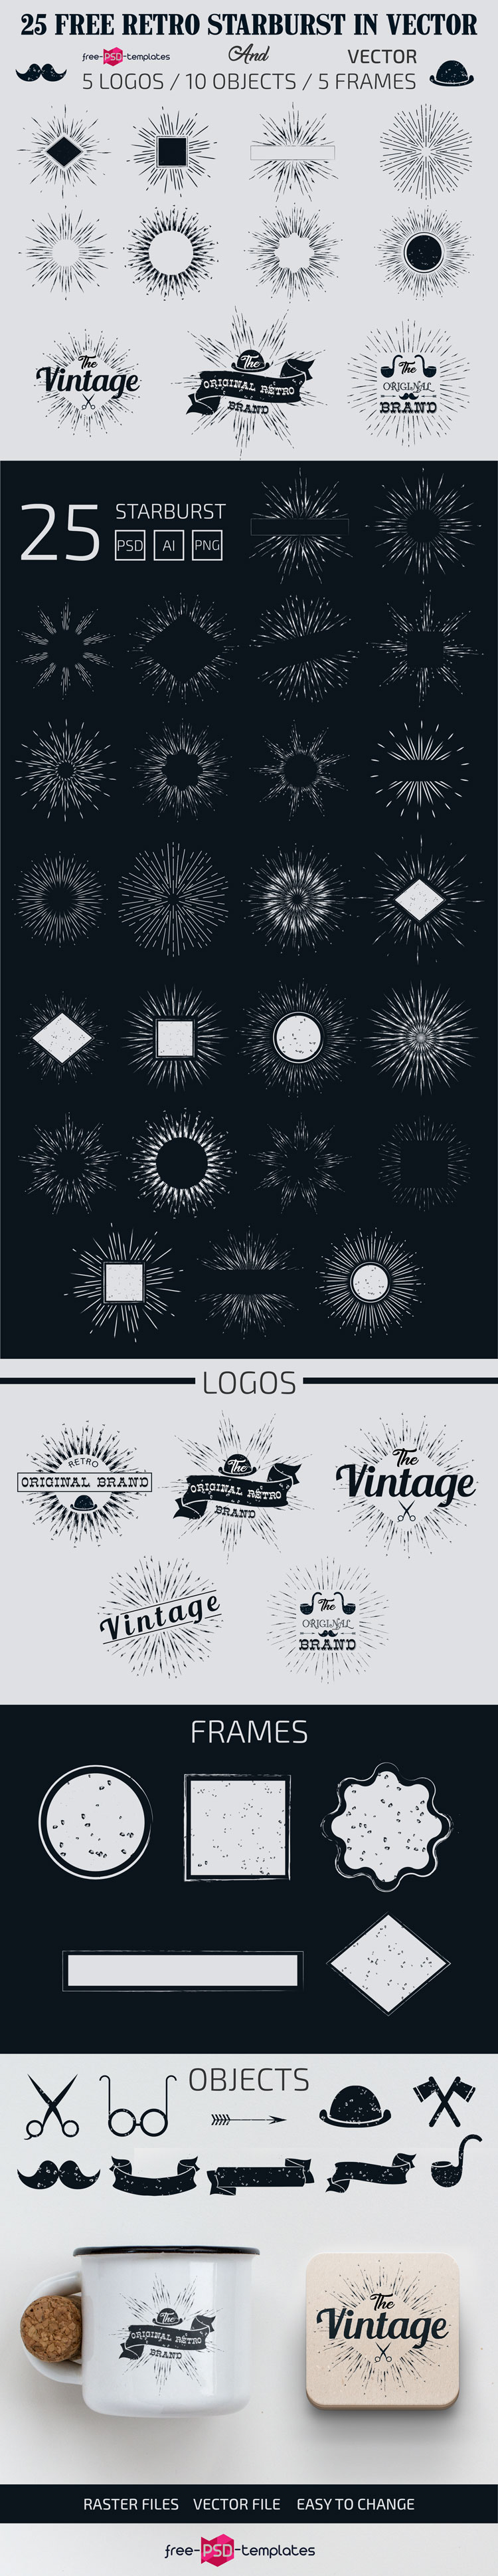 free retro starburst in vector free psd templates